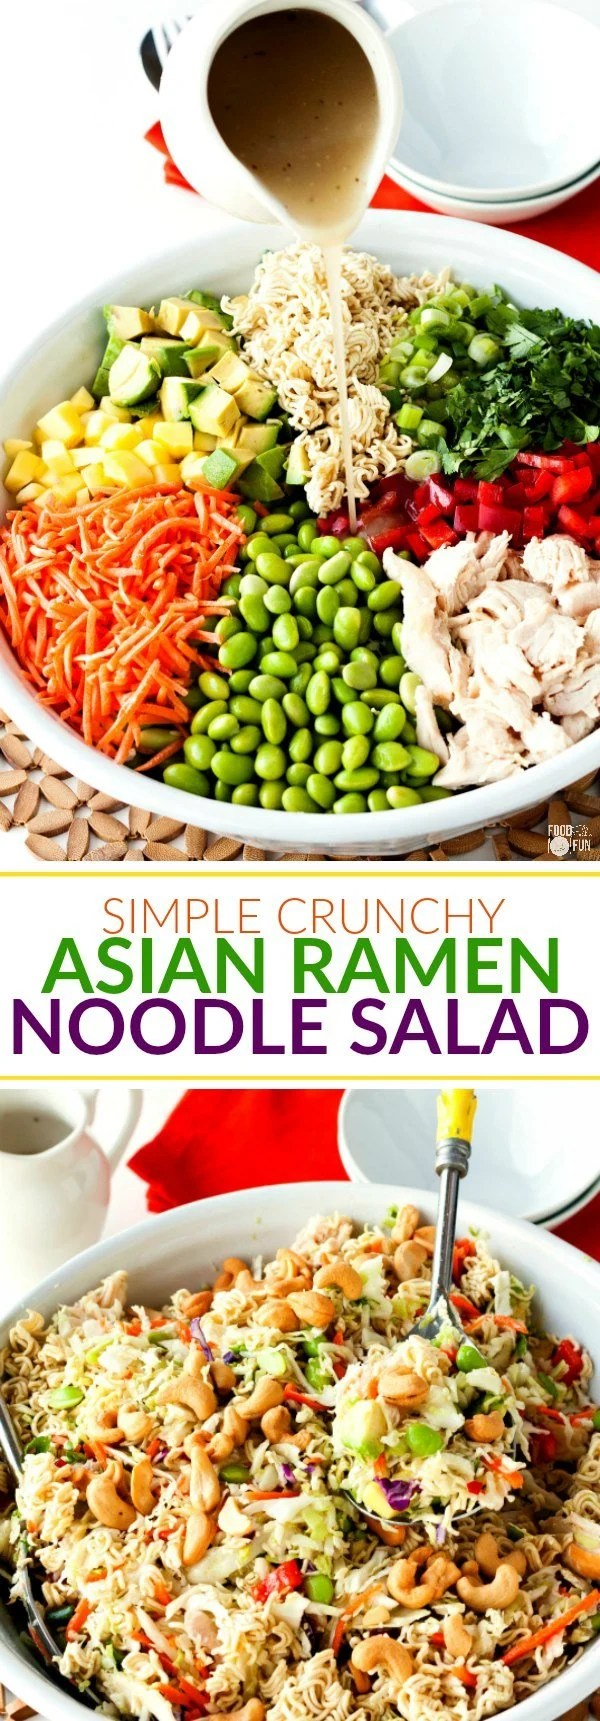 Collage of Simple Crunchy Asian ramen noodle salad with text overlay for Pinterest